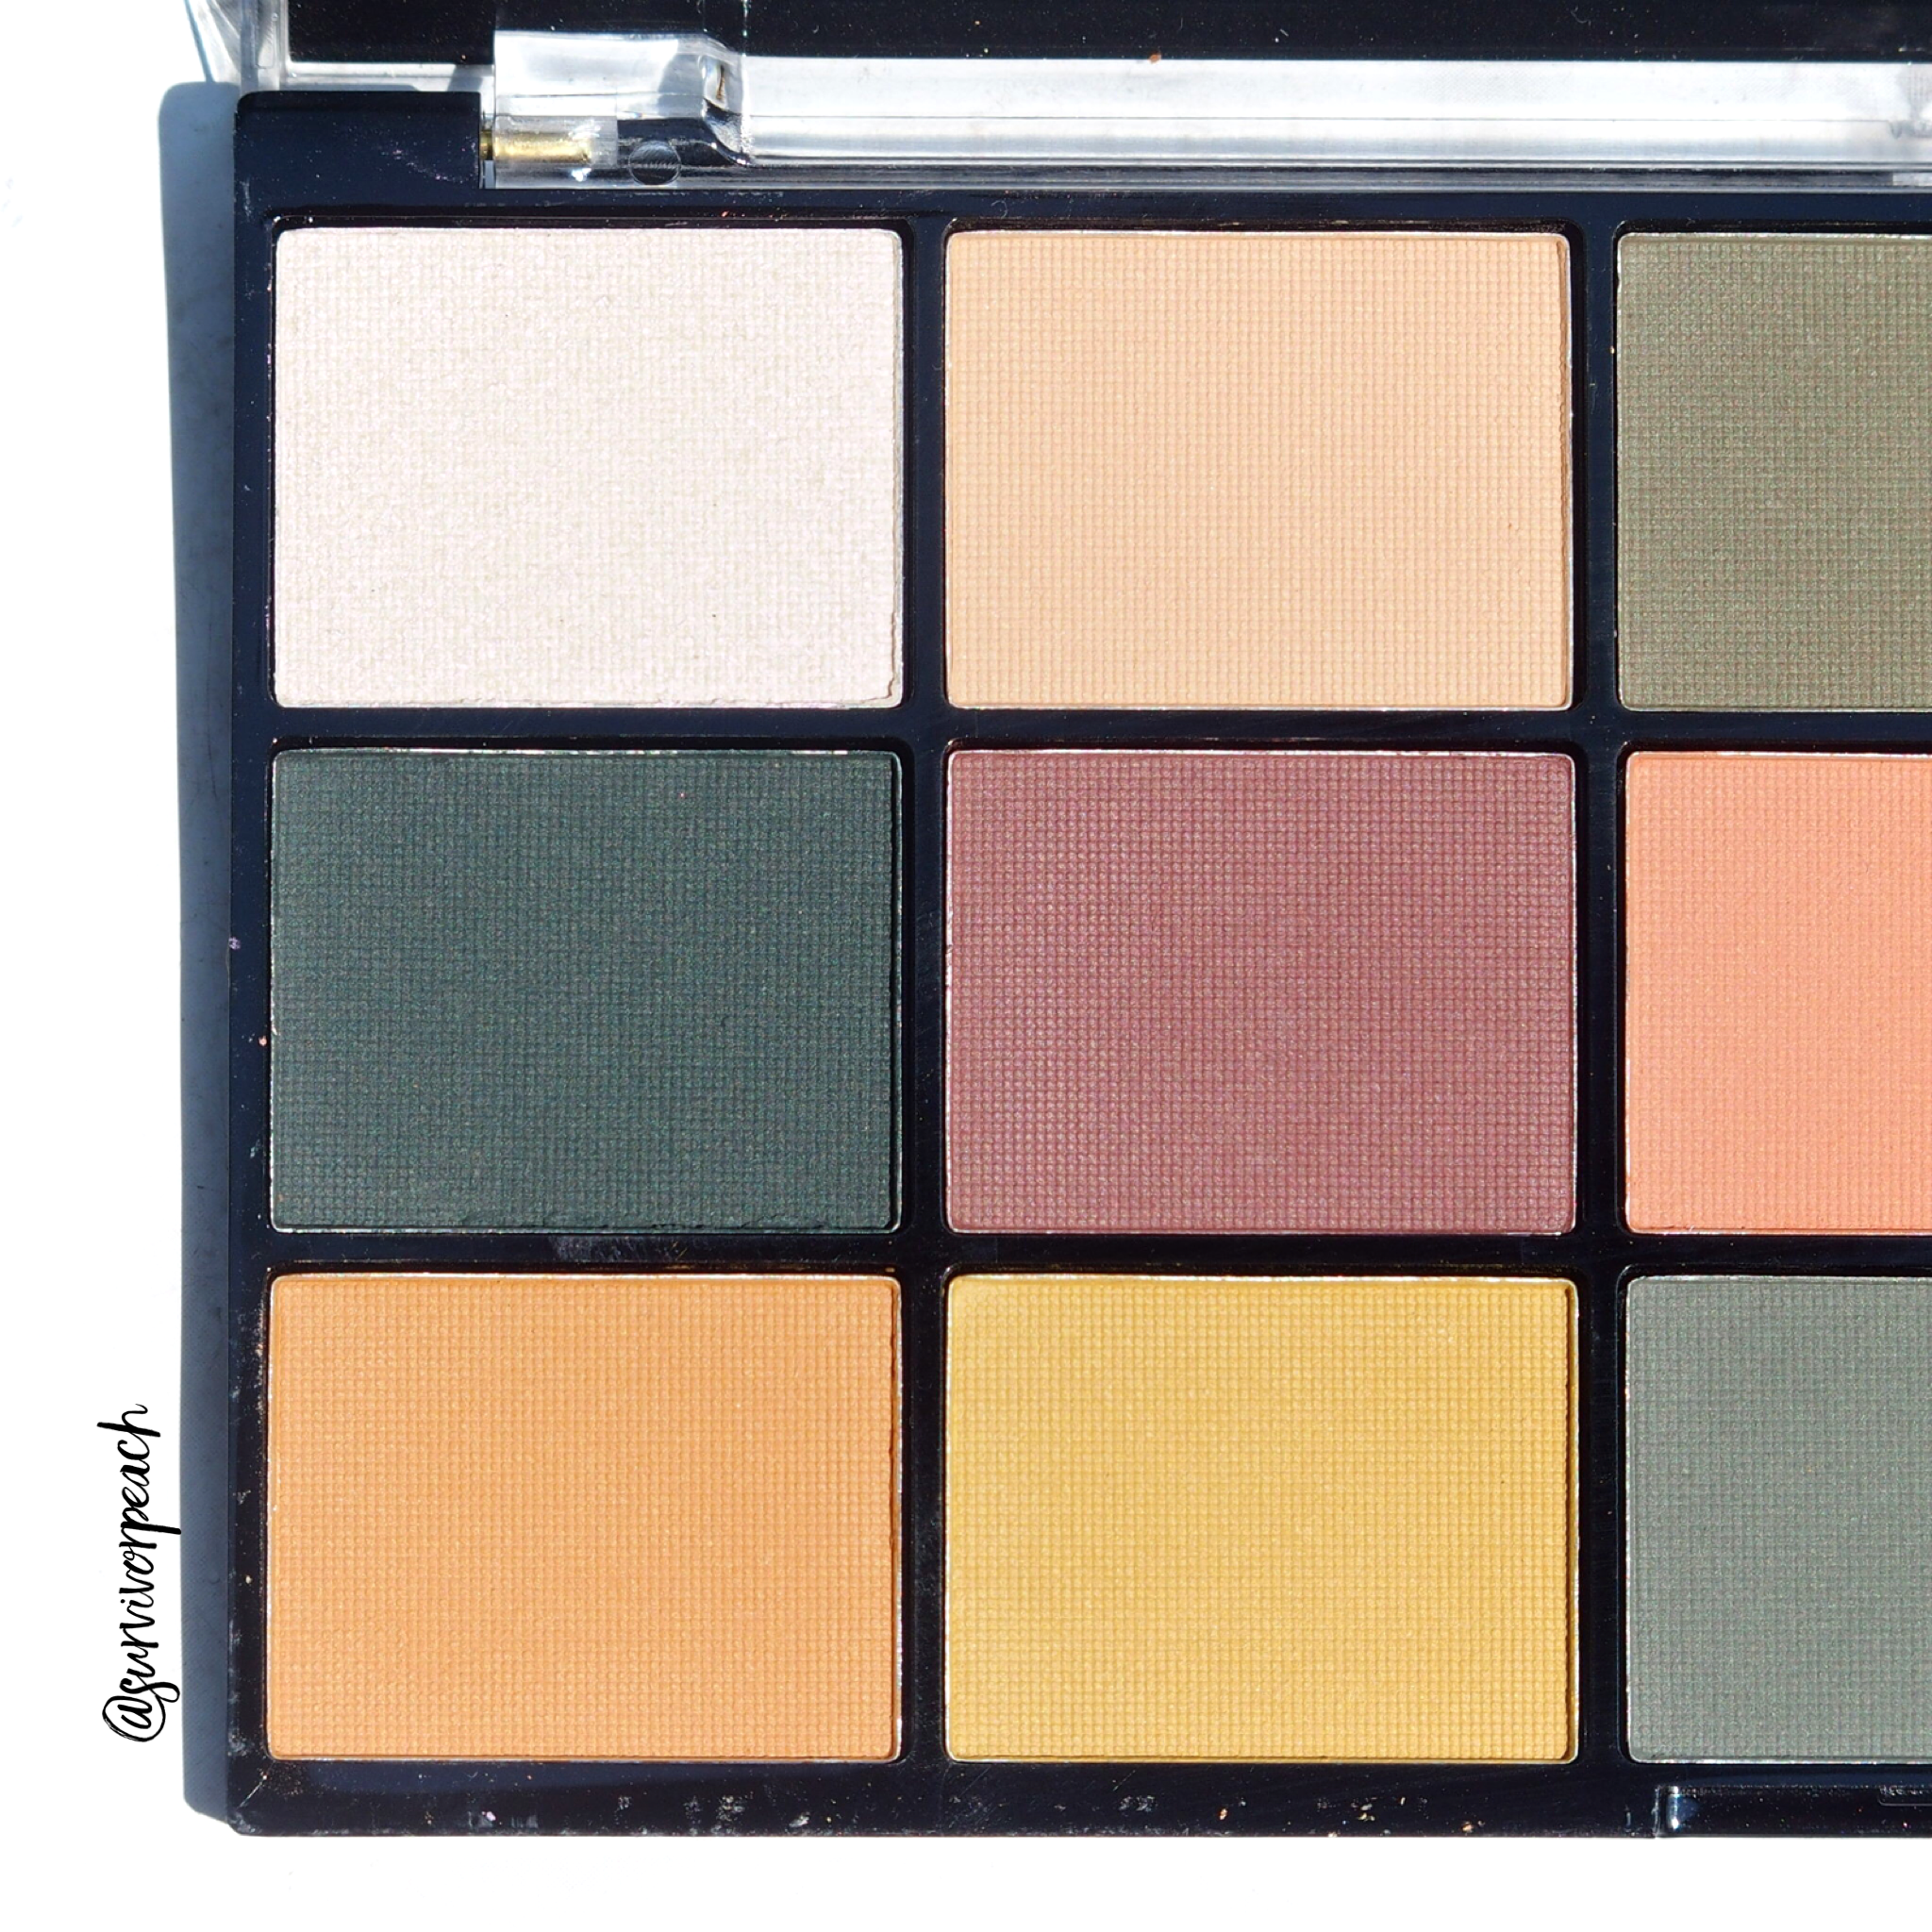 Revolution Re-loaded palette Iconic Division (left)